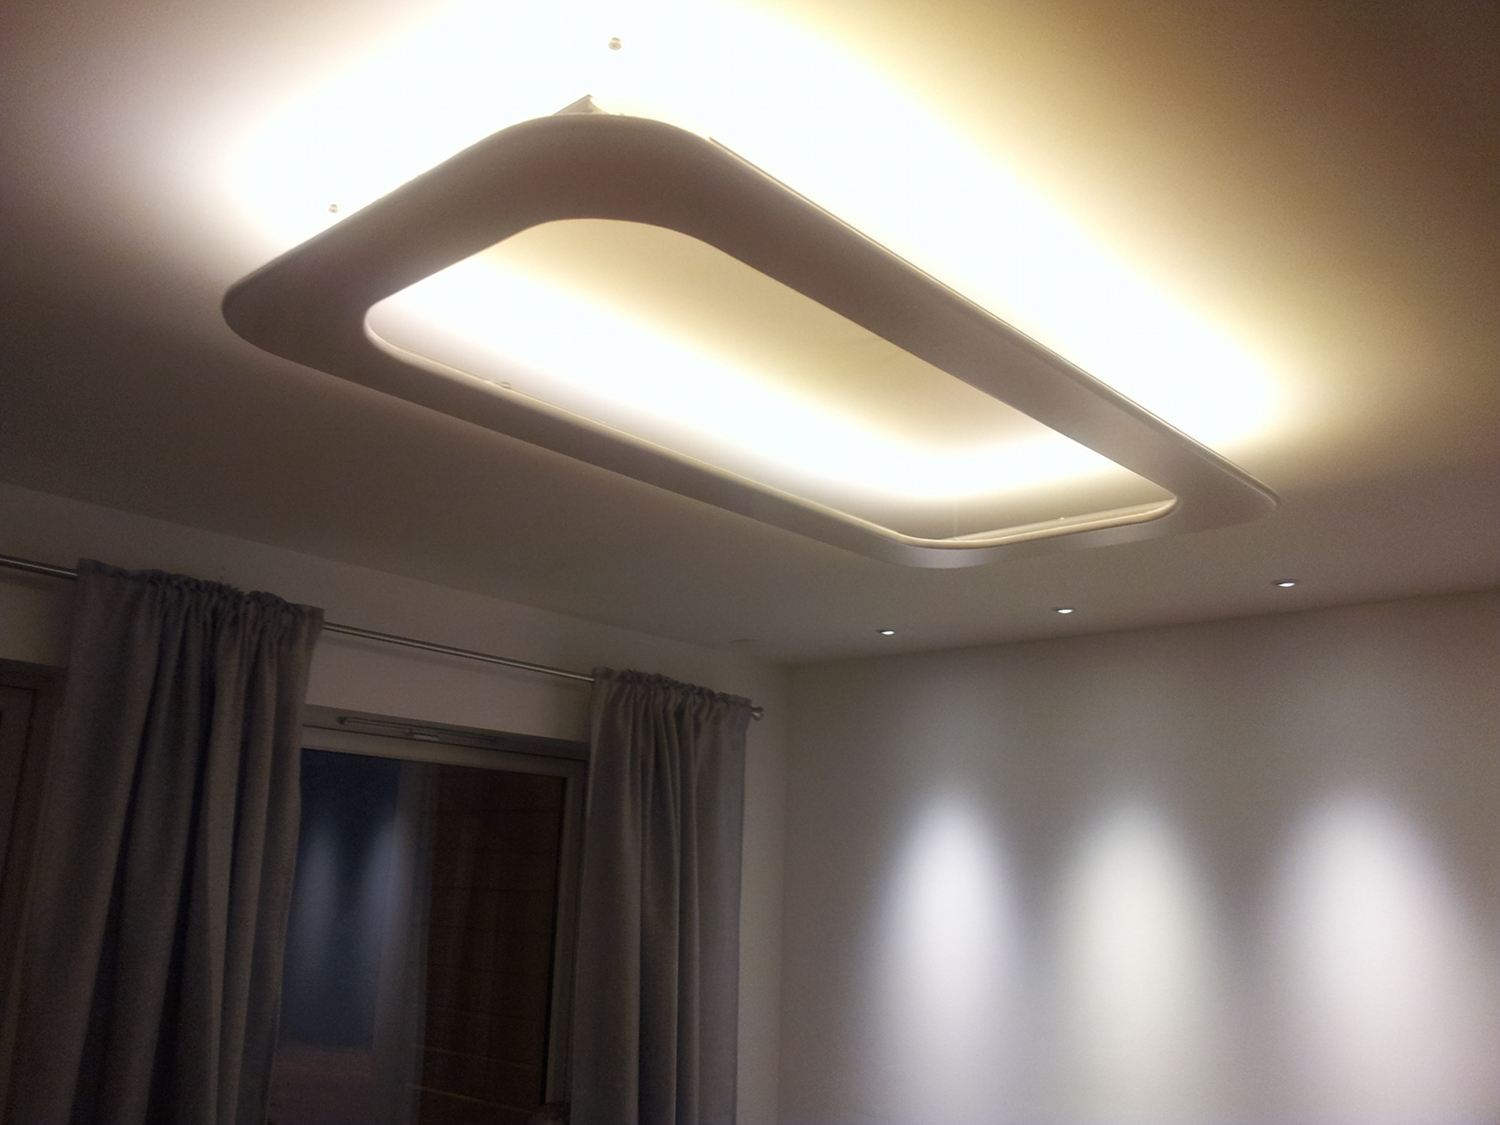 Designer Lights For Home Led Ceiling Lights For Your Home Interior Ideas 4 Homes